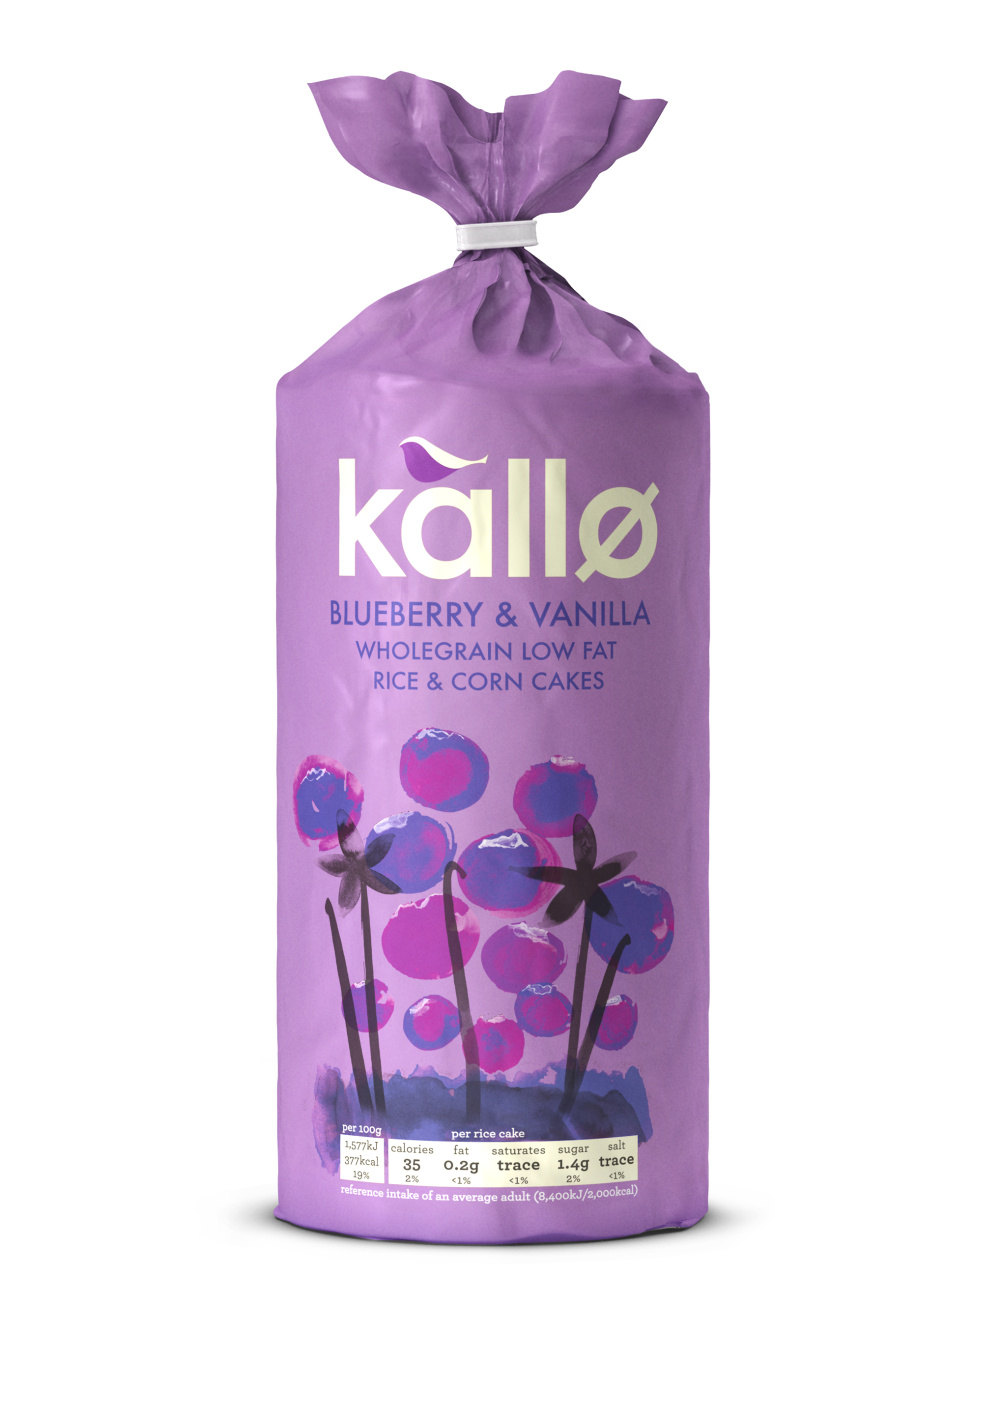 Kallo Blueberry